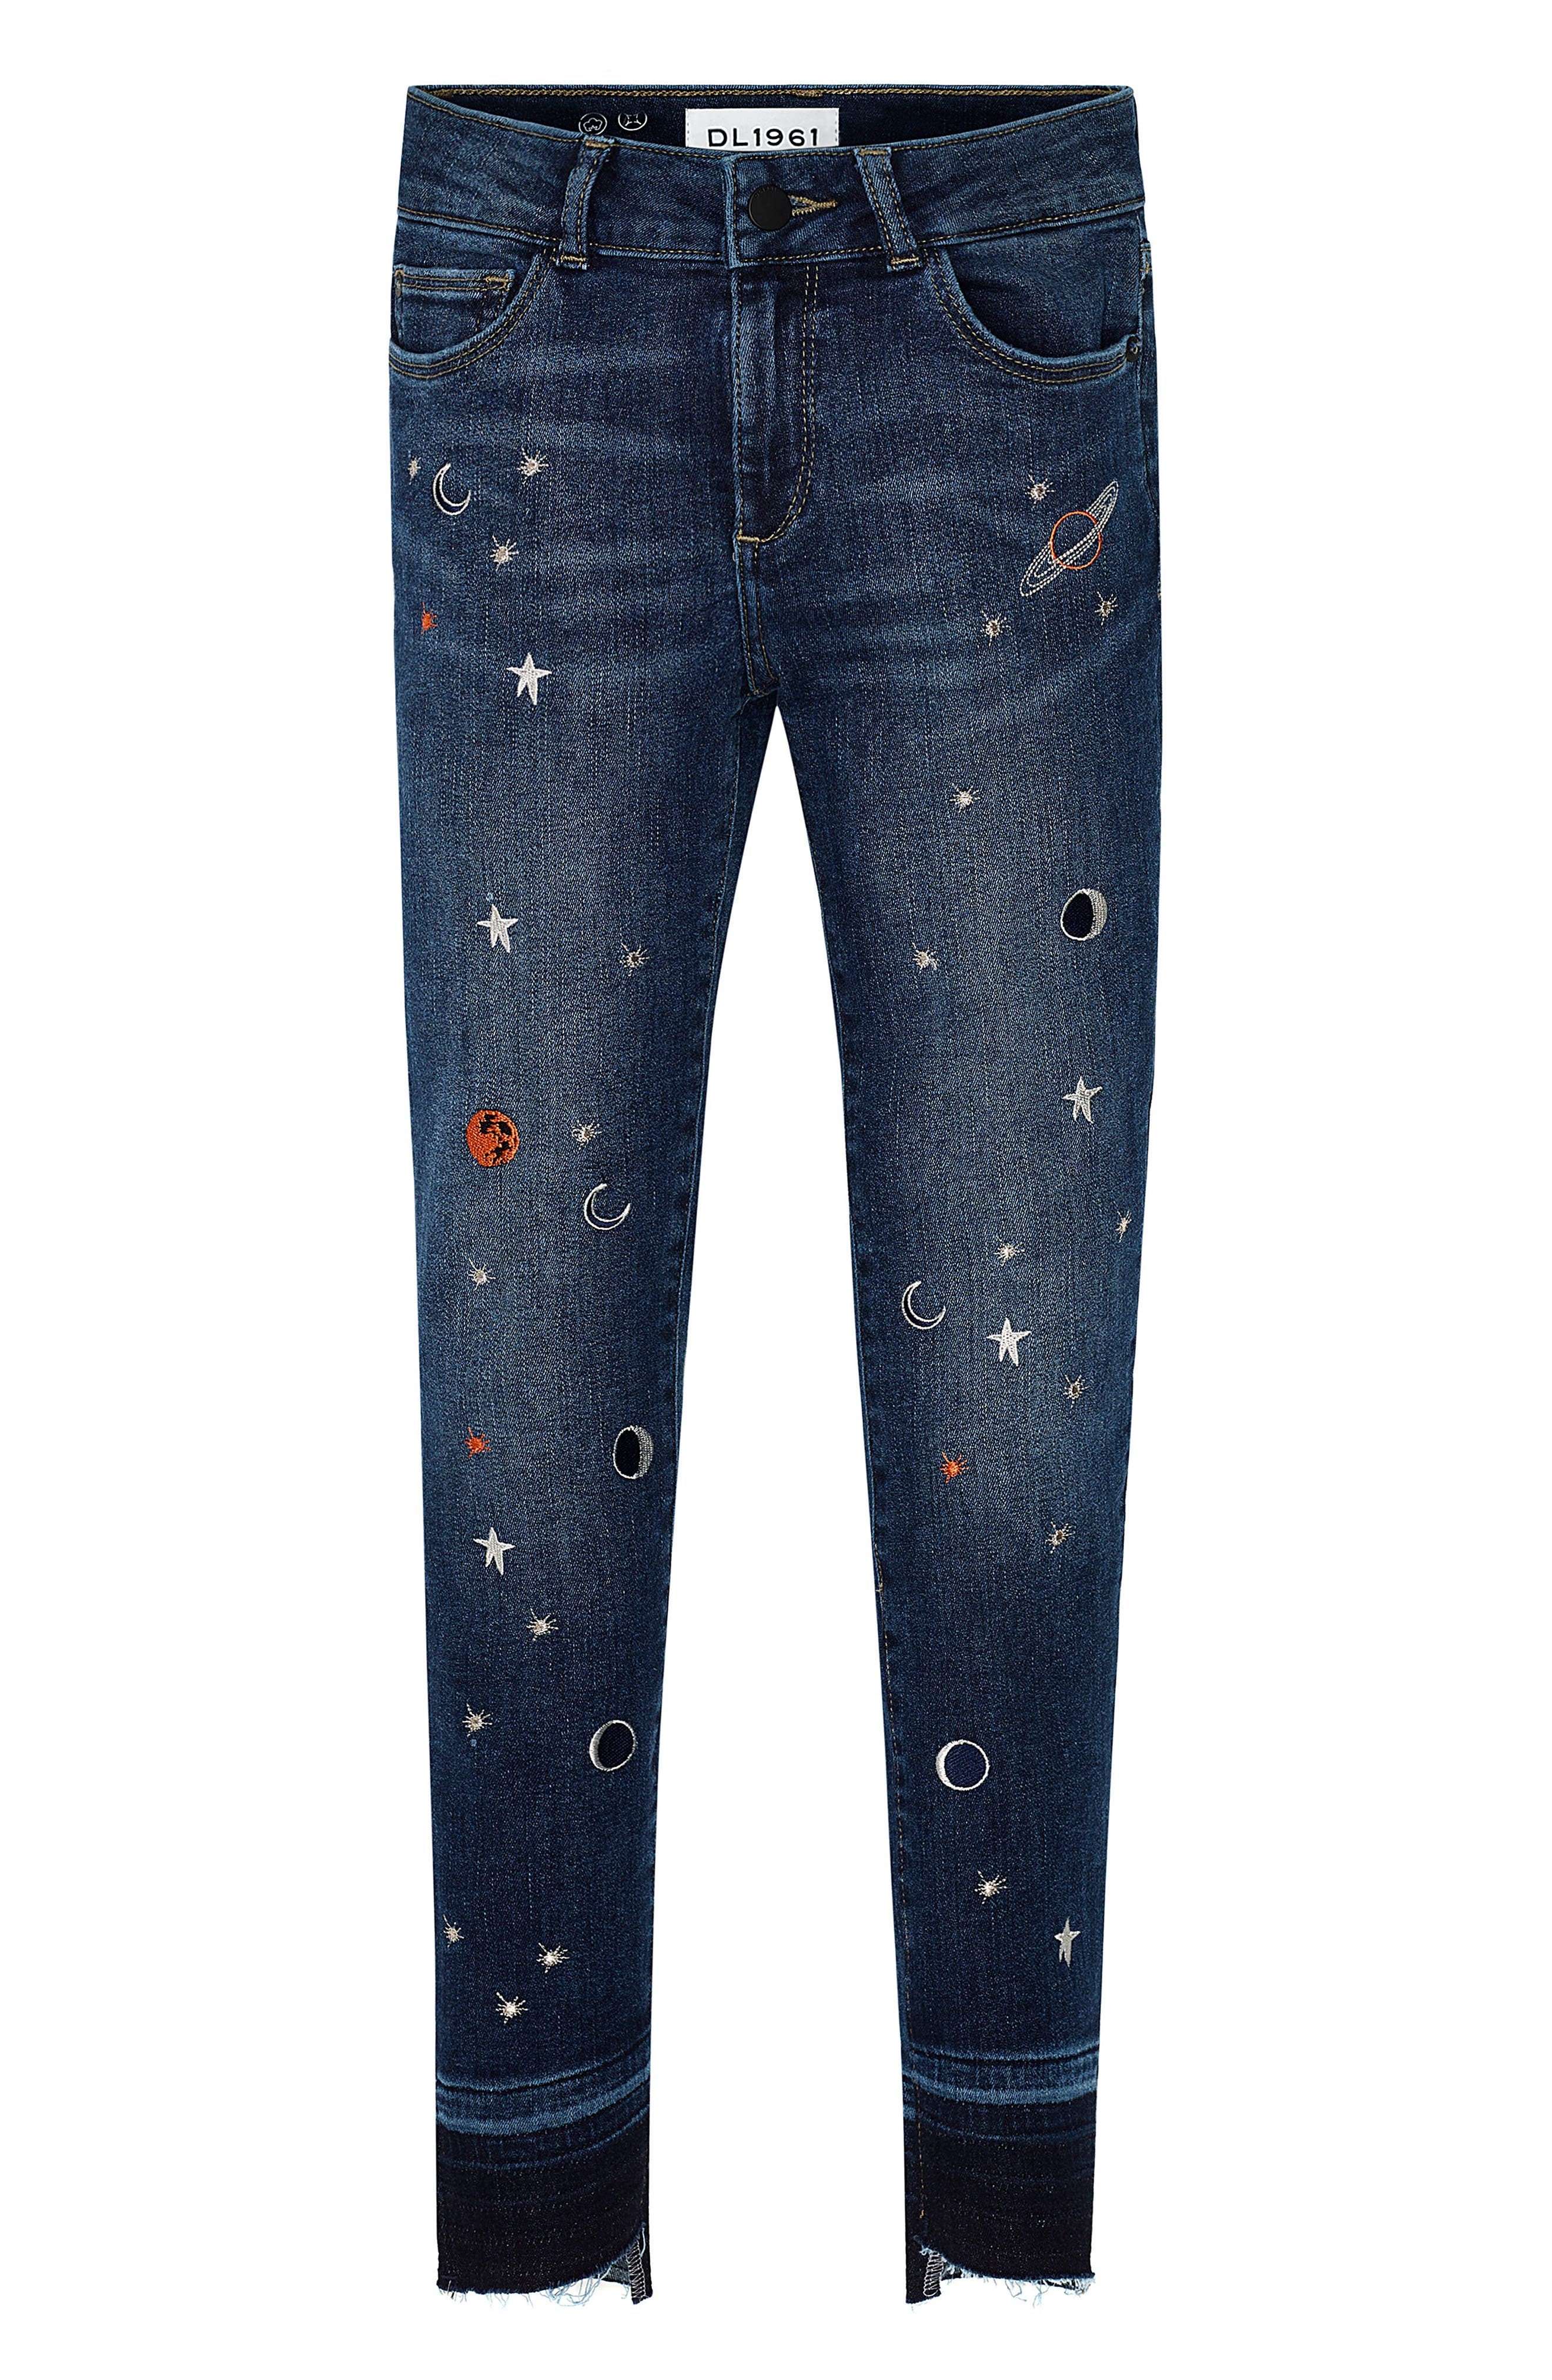 Chloe Galaxy Embroidered Skinny Jeans,                             Main thumbnail 1, color,                             Galaxy